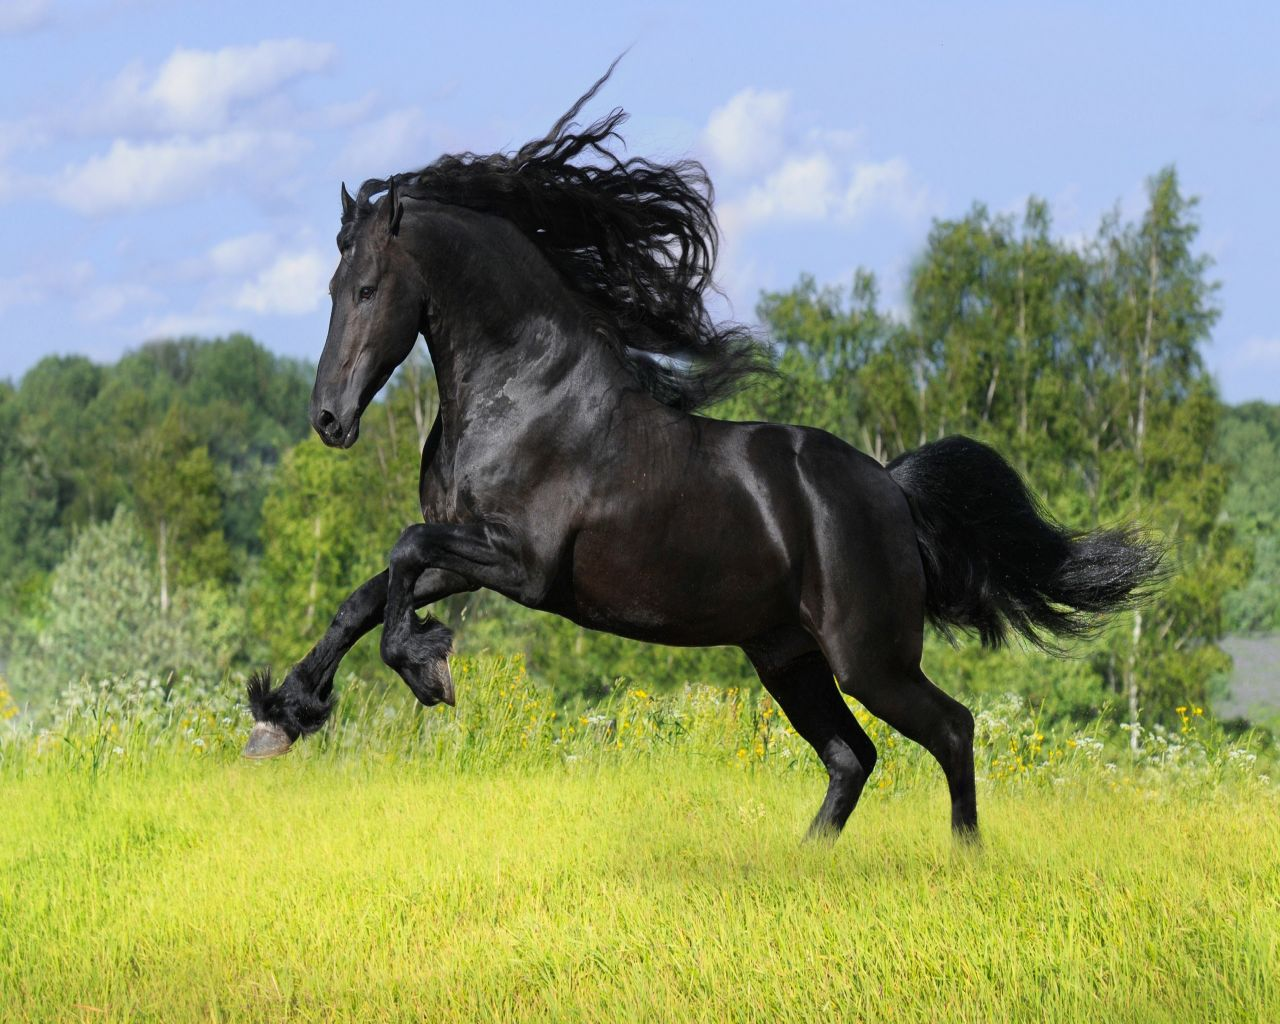 Horse Desktop Wallpaper Themes - WallpaperSafari